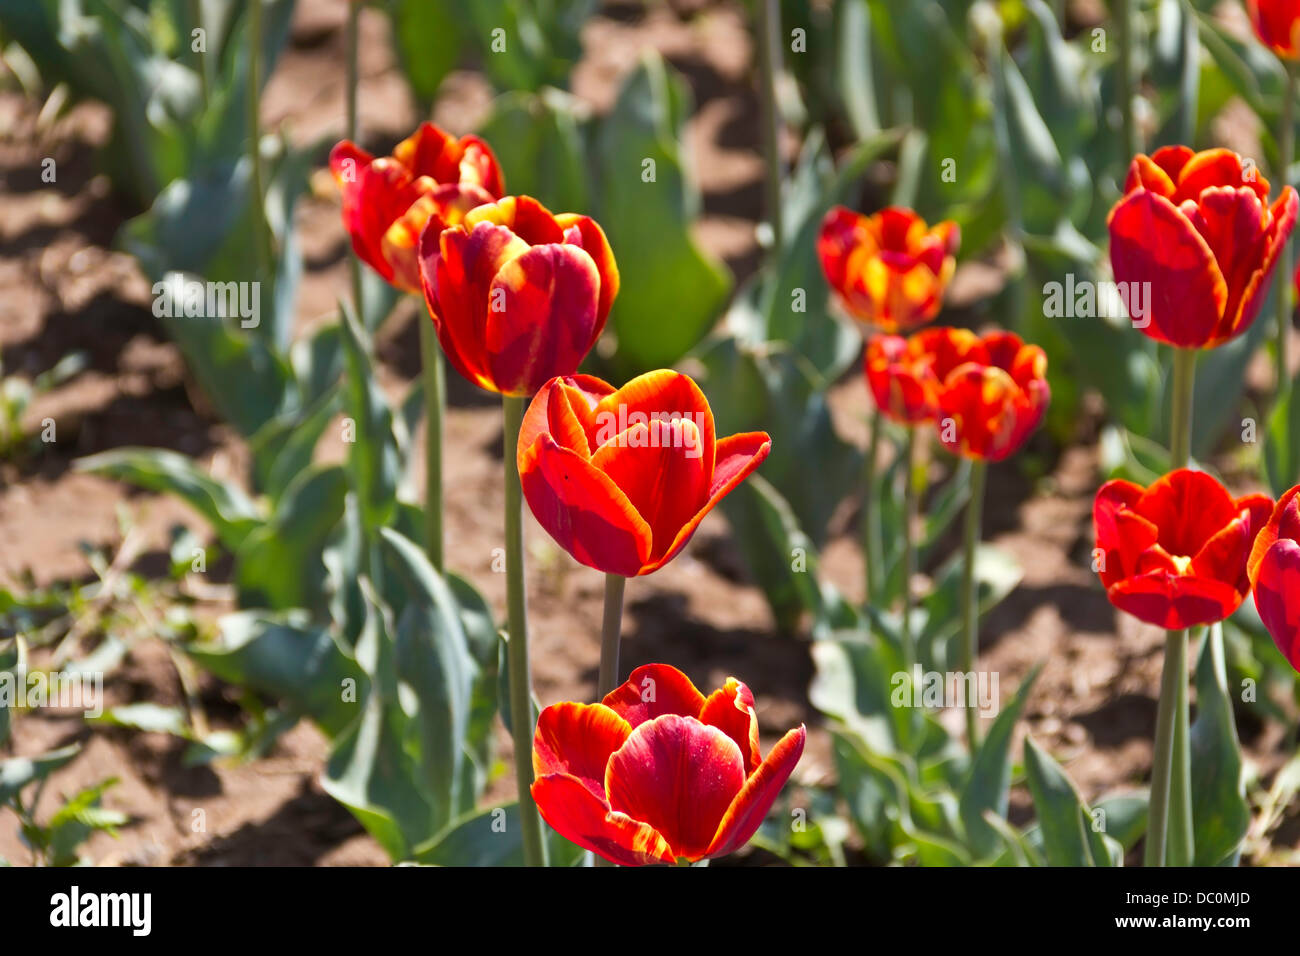 Yellow red color flowers india stock photos yellow red color red tulips with yellow tips inside the tulip garden in srinagar these are planted in mightylinksfo